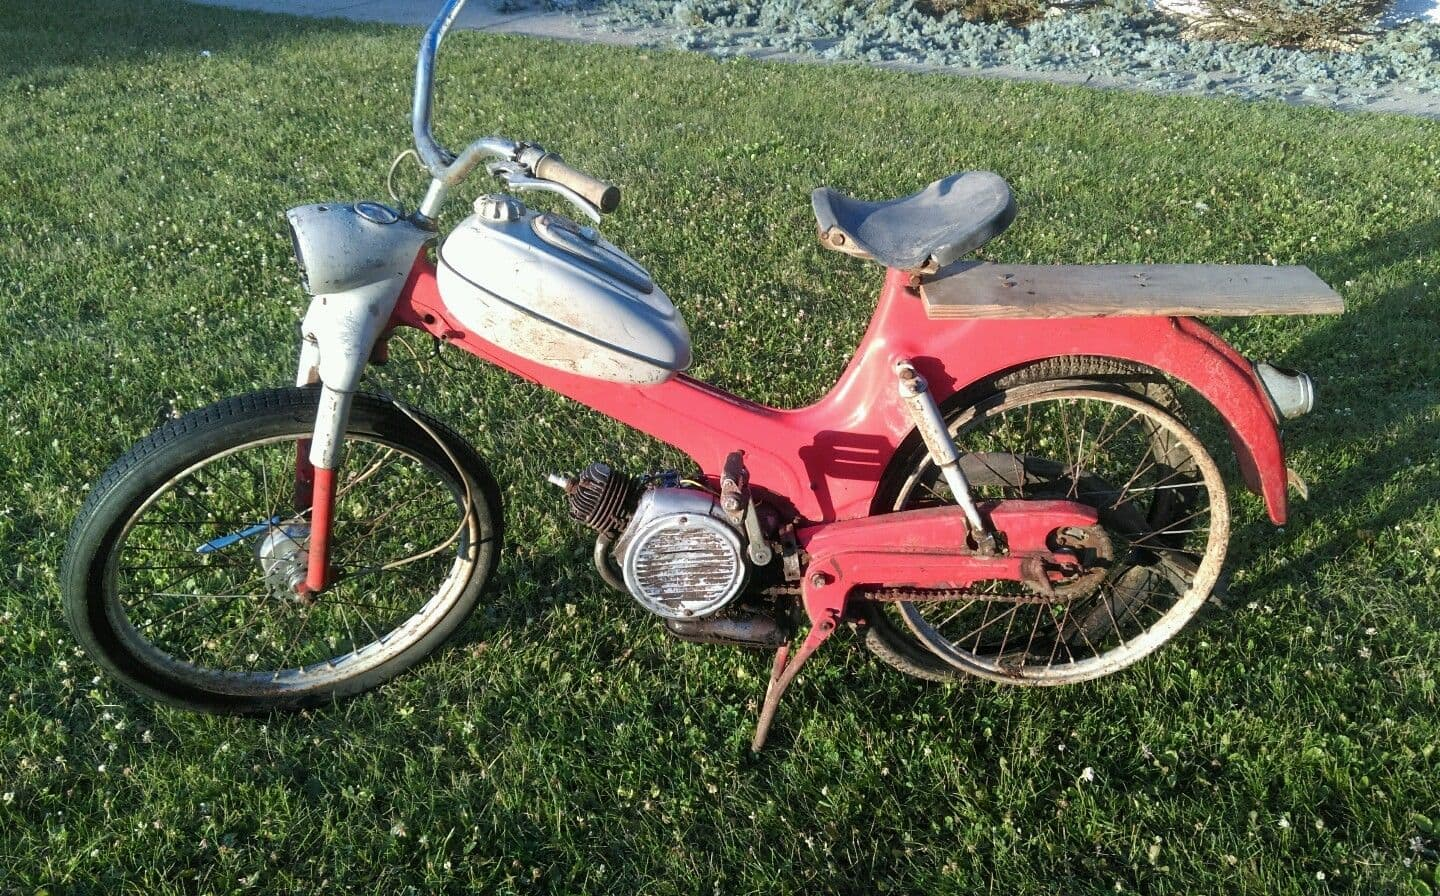 810.94050 Allstate Mo-Ped Puch